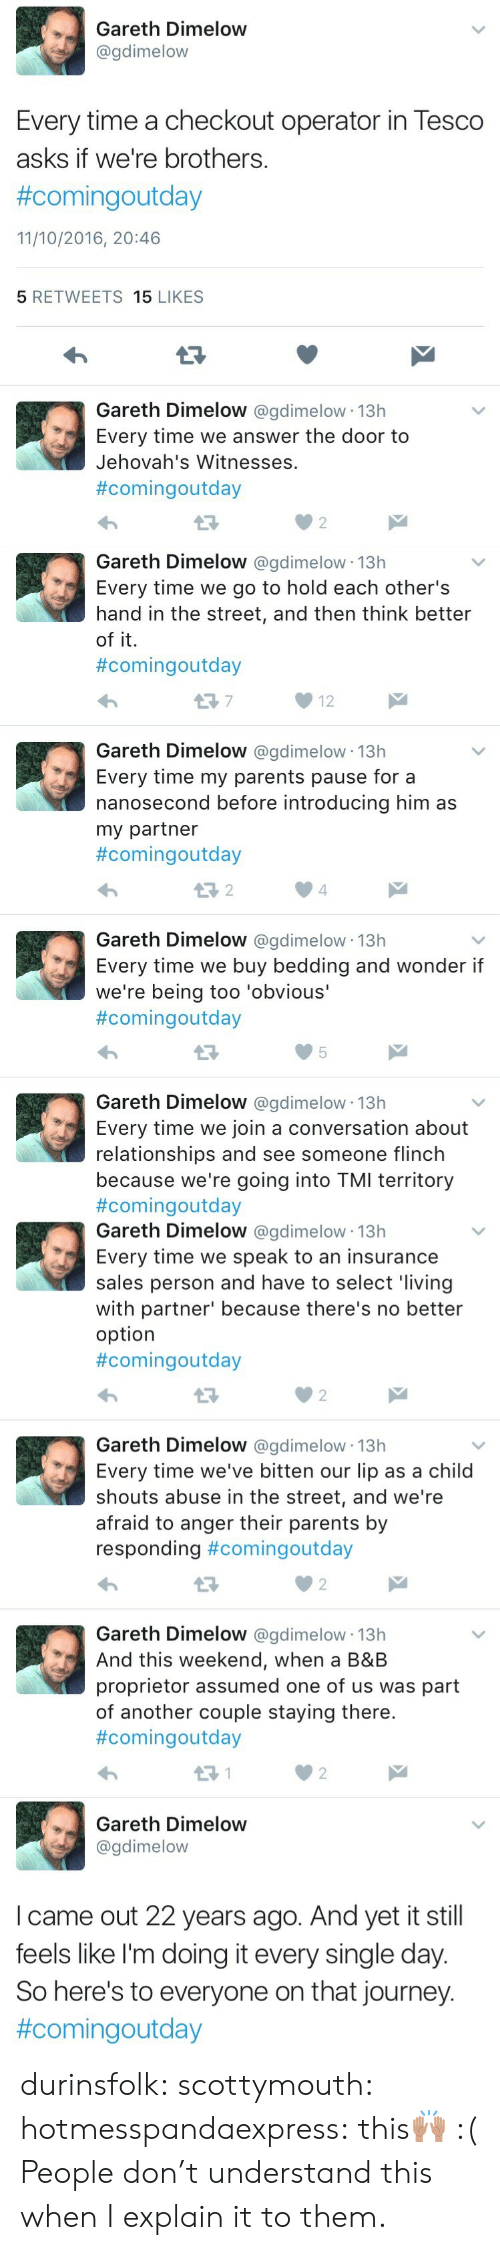 bedding: Gareth Dimelow  @gdimelow  Every time a checkout operator in Tesco  asks if we're brothers.  #comingoutday  11/10/2016, 20:46  5 RETWEETS 15 LIKES  Gareth Dimelow @gdimelow 13h  Every time we answer the door to  Jehovah's Witnesses  #comingoutday  02   Gareth Dimelow @gdimelow 13h  Every time we go to hold each other's  hand in the street, and then think better  of it.  #comingoutday  12  Gareth Dimelow @gdimelow 13h  Every time my parents pause for a  nanosecond before introducing him as  my partner  #comingOutday  4  Gareth Dimelow @gdimelow 13h  Every time we buy bedding and wonder if  we're being too 'obvious'  #comingoutday  Gareth Dimelow @gdimelow 13h  Every time we join a conversation about  relationships and see someone flinch  because we're going into TMI territory  #comingoutday   Gareth Dimelow @gdimelow 13h  Every time we speak to an insurance  sales person and have to select 'living  with partner' because there's no better  option  #comingoutday  0 2  Gareth Dimelow @gdimelow 13h  Every time we've bitten our lip as a child  shouts abuse in the street, and we're  afraid to anger their parents by  responding #comingoutday  Gareth Dimelow @gdimelow 13h  And this weekend, when a B&B  proprietor assumed one of us was part  of another couple staying there.  #comingoutday  2   Gareth Dimelow  @gdimelow  I came out 22 years ago. And yet it still  feels like l'm doing it every single day.  So here's to everyone on that journey.  durinsfolk: scottymouth:  hotmesspandaexpress:  this🙌🏽   :(   People don't understand this when I explain it to them.